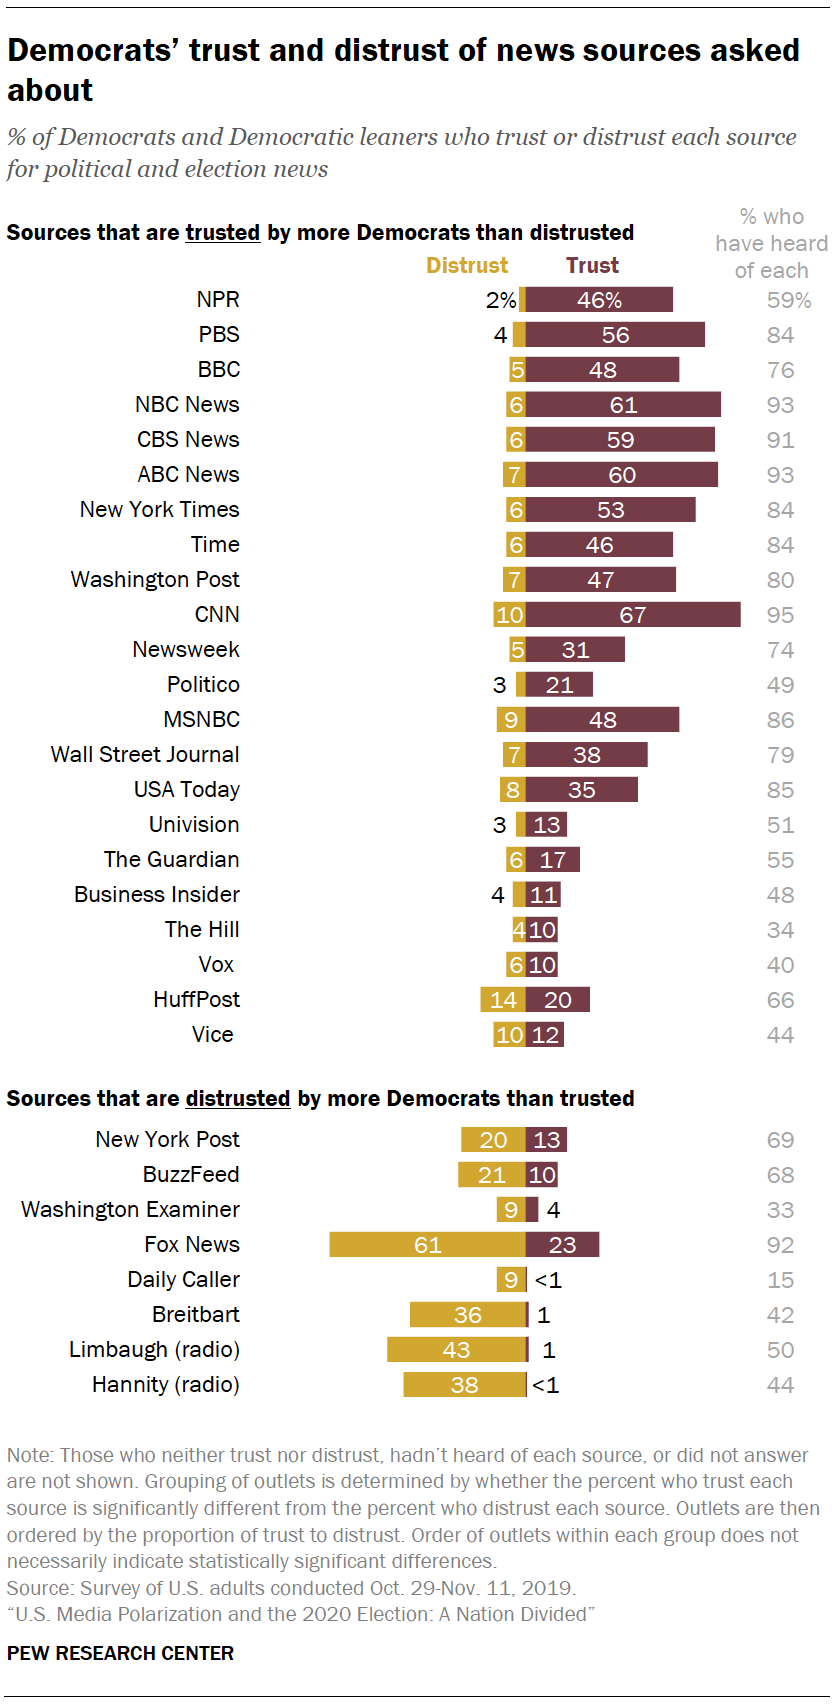 Democrats' trust and distrust of news sources asked about